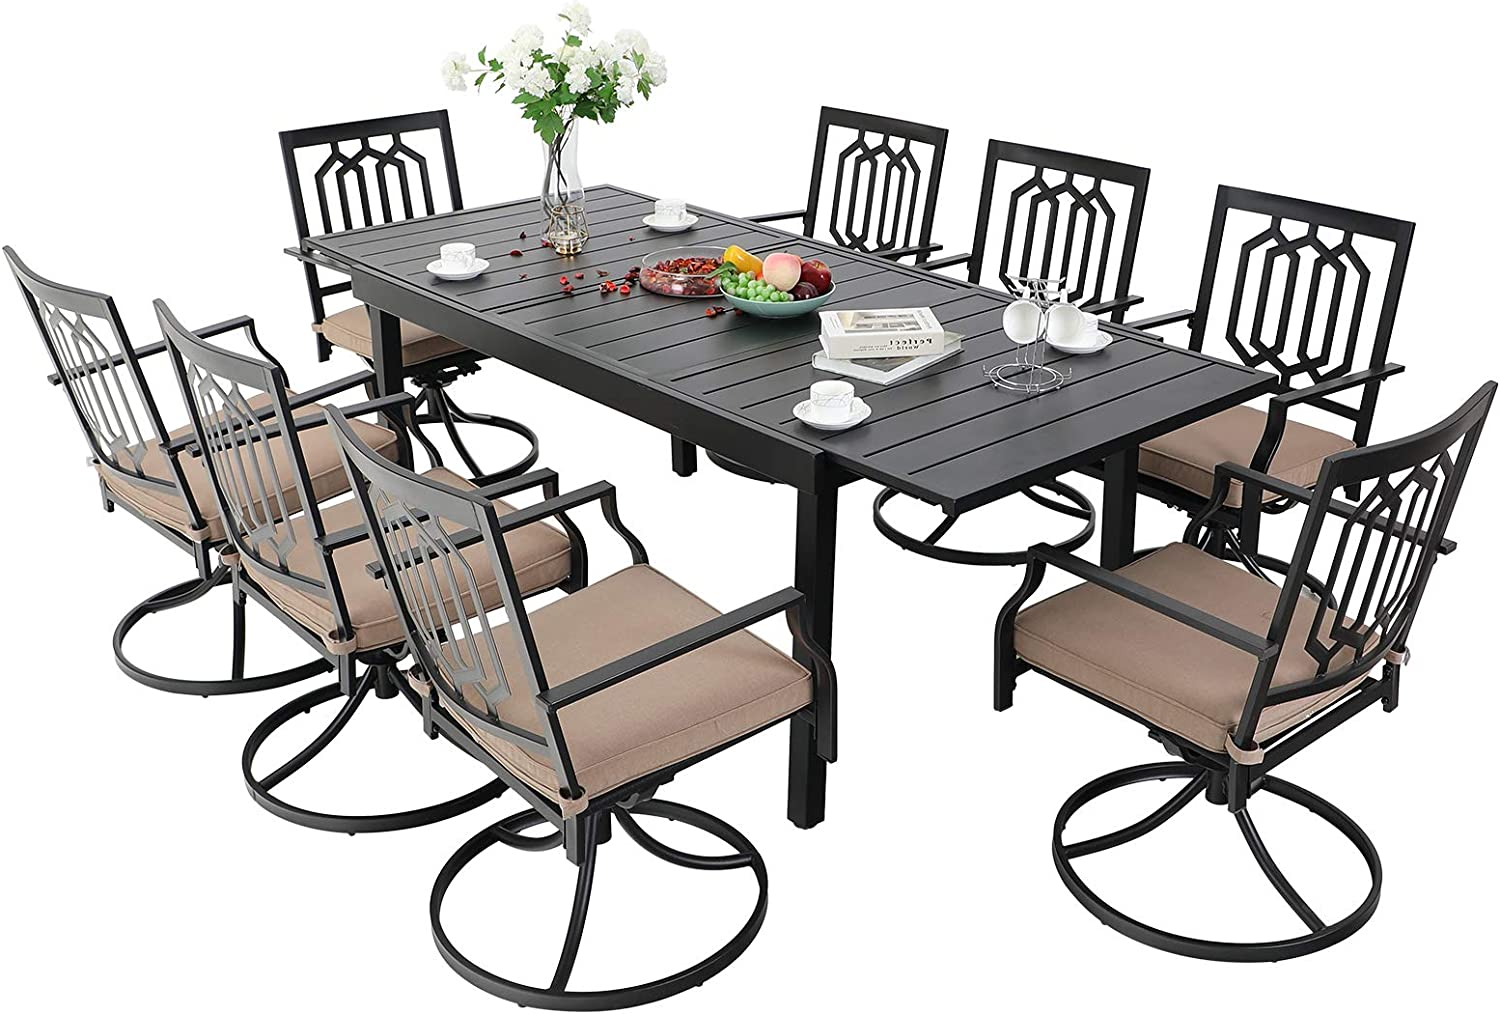 MFSTUDIO 9PCS Patio Dining Set, Large Black Rectangular Expandable Table with 8 Swivel Chairs, Outdoor Indoor Metal Furniture Set with Removable Cushions for Poolside, Porch, Backyard, Lawn, Garden